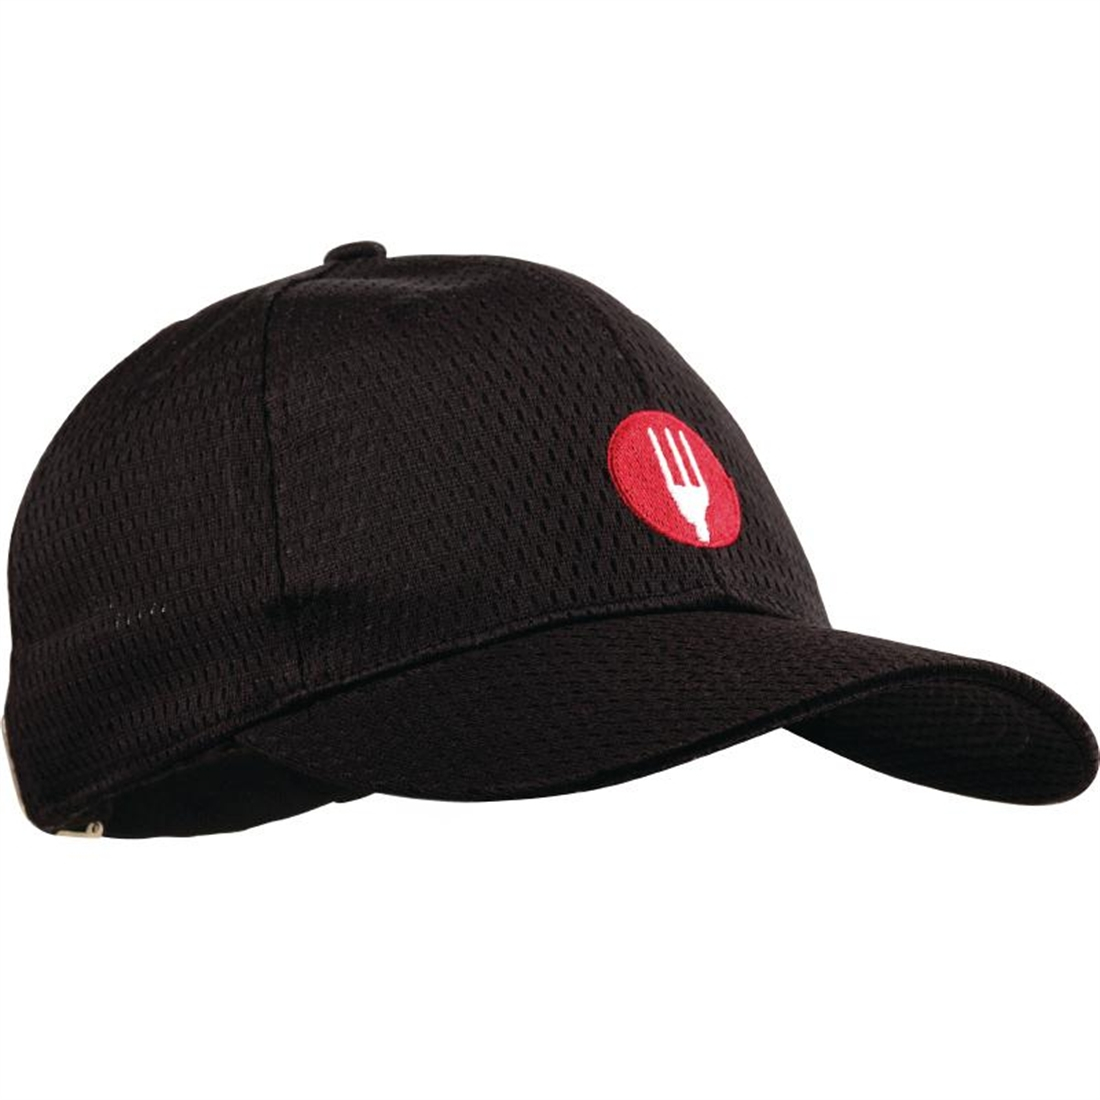 Colour By Chef Works Cool Vent Baseball Cap Black